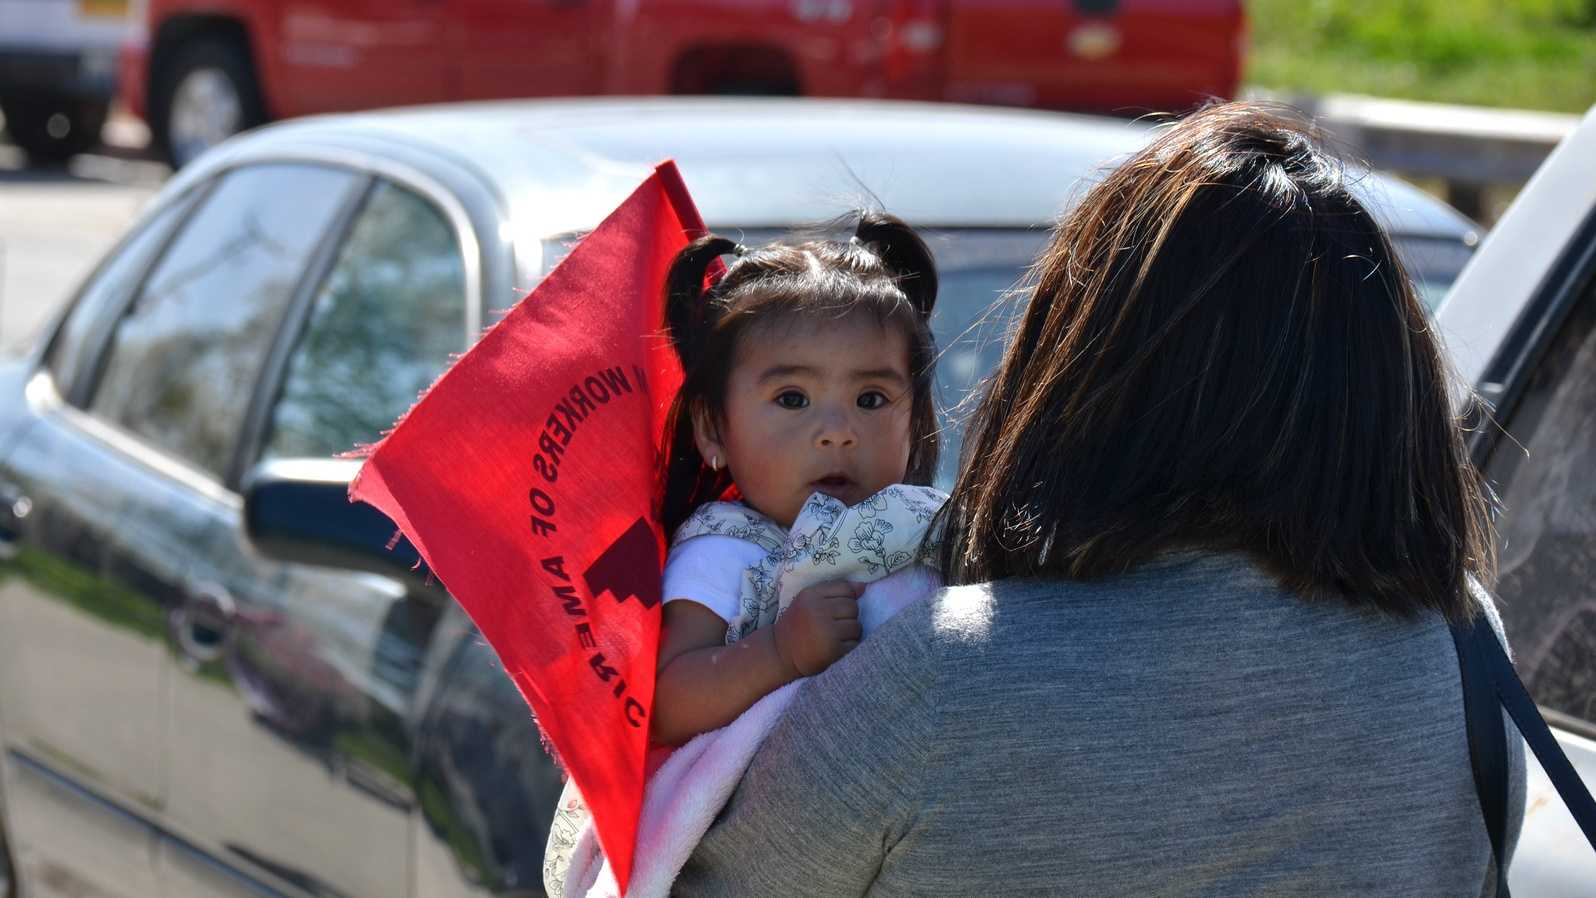 United Farm Worker demonstrators in Salinas demand comprehensive reforms to U.S. immigration laws. (March 2013)